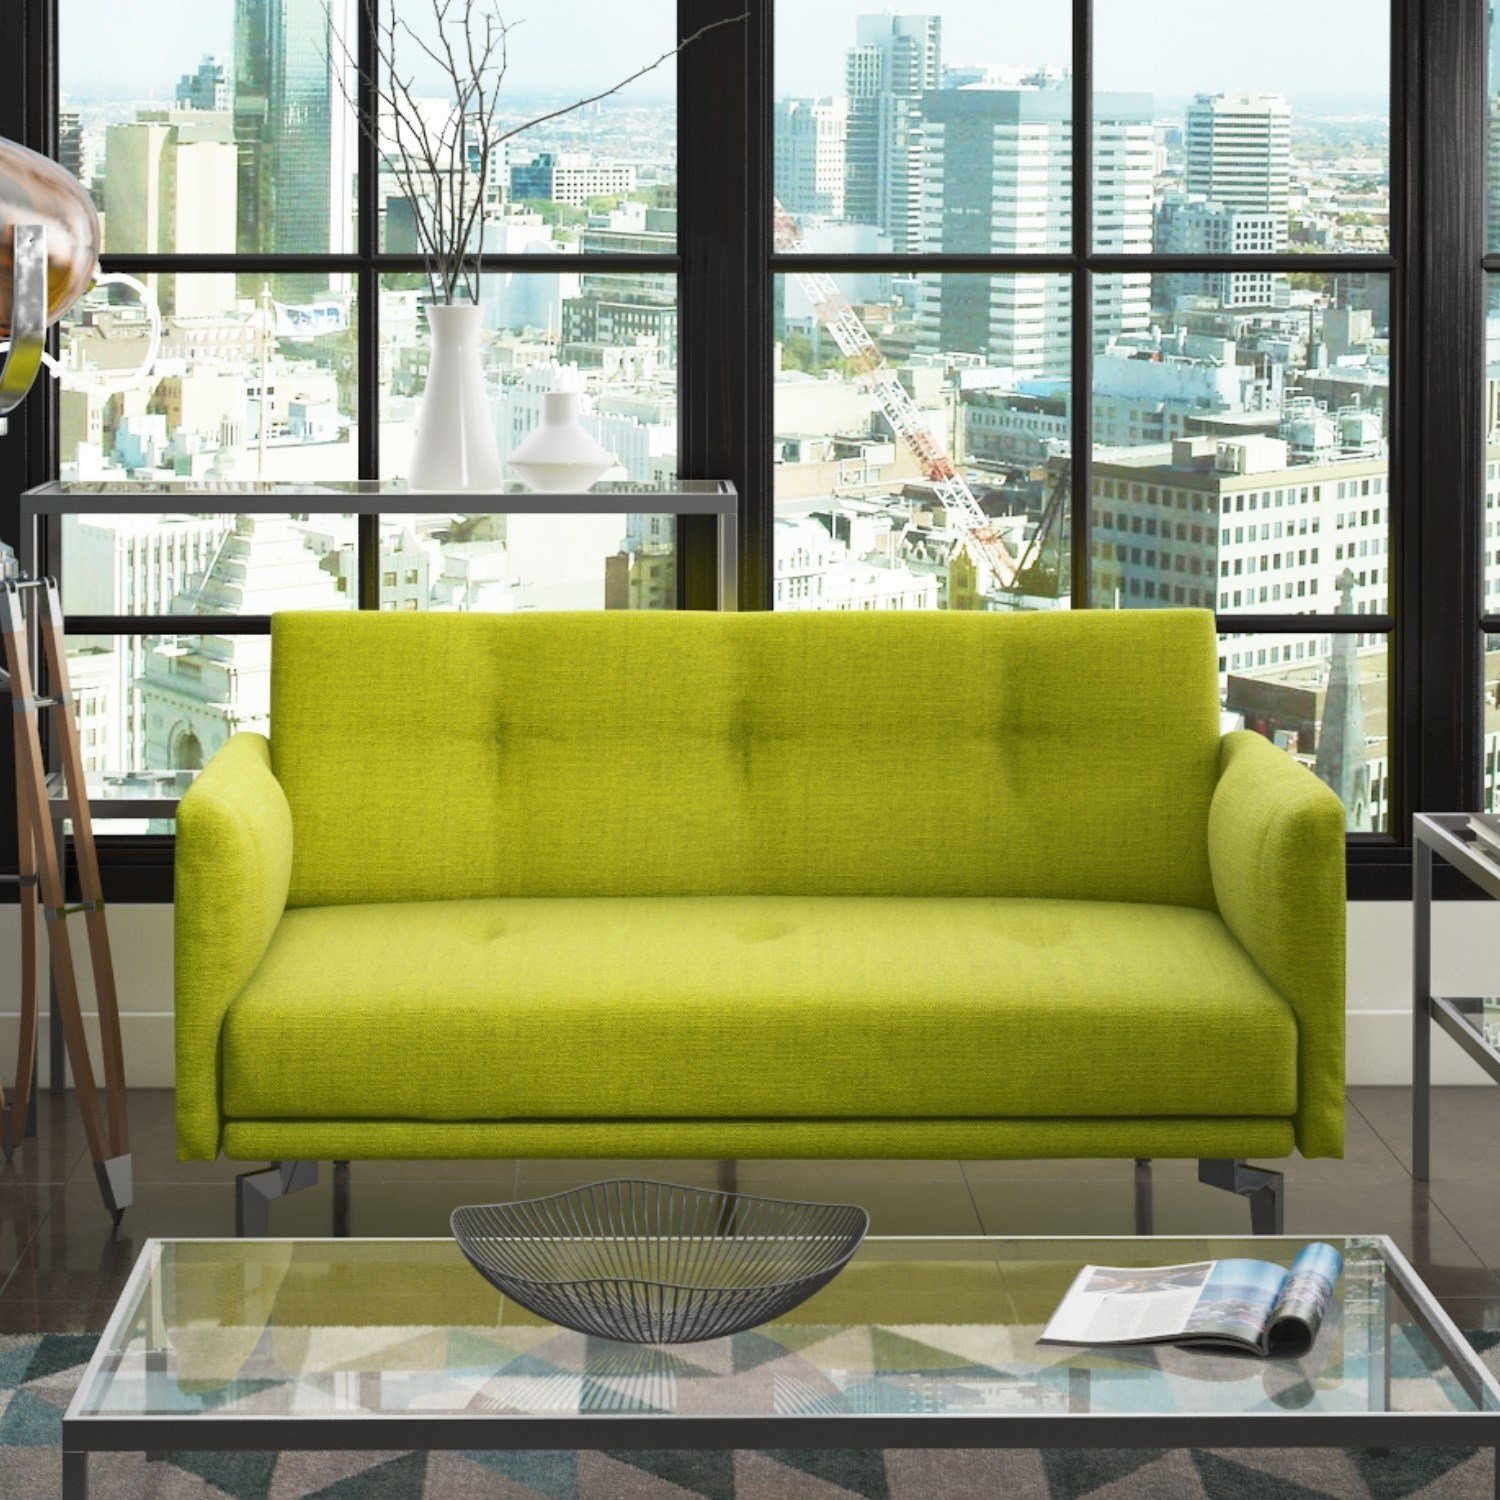 Colby 2 Seater Modern Sofa in Lime Green Amazon Kitchen & Home